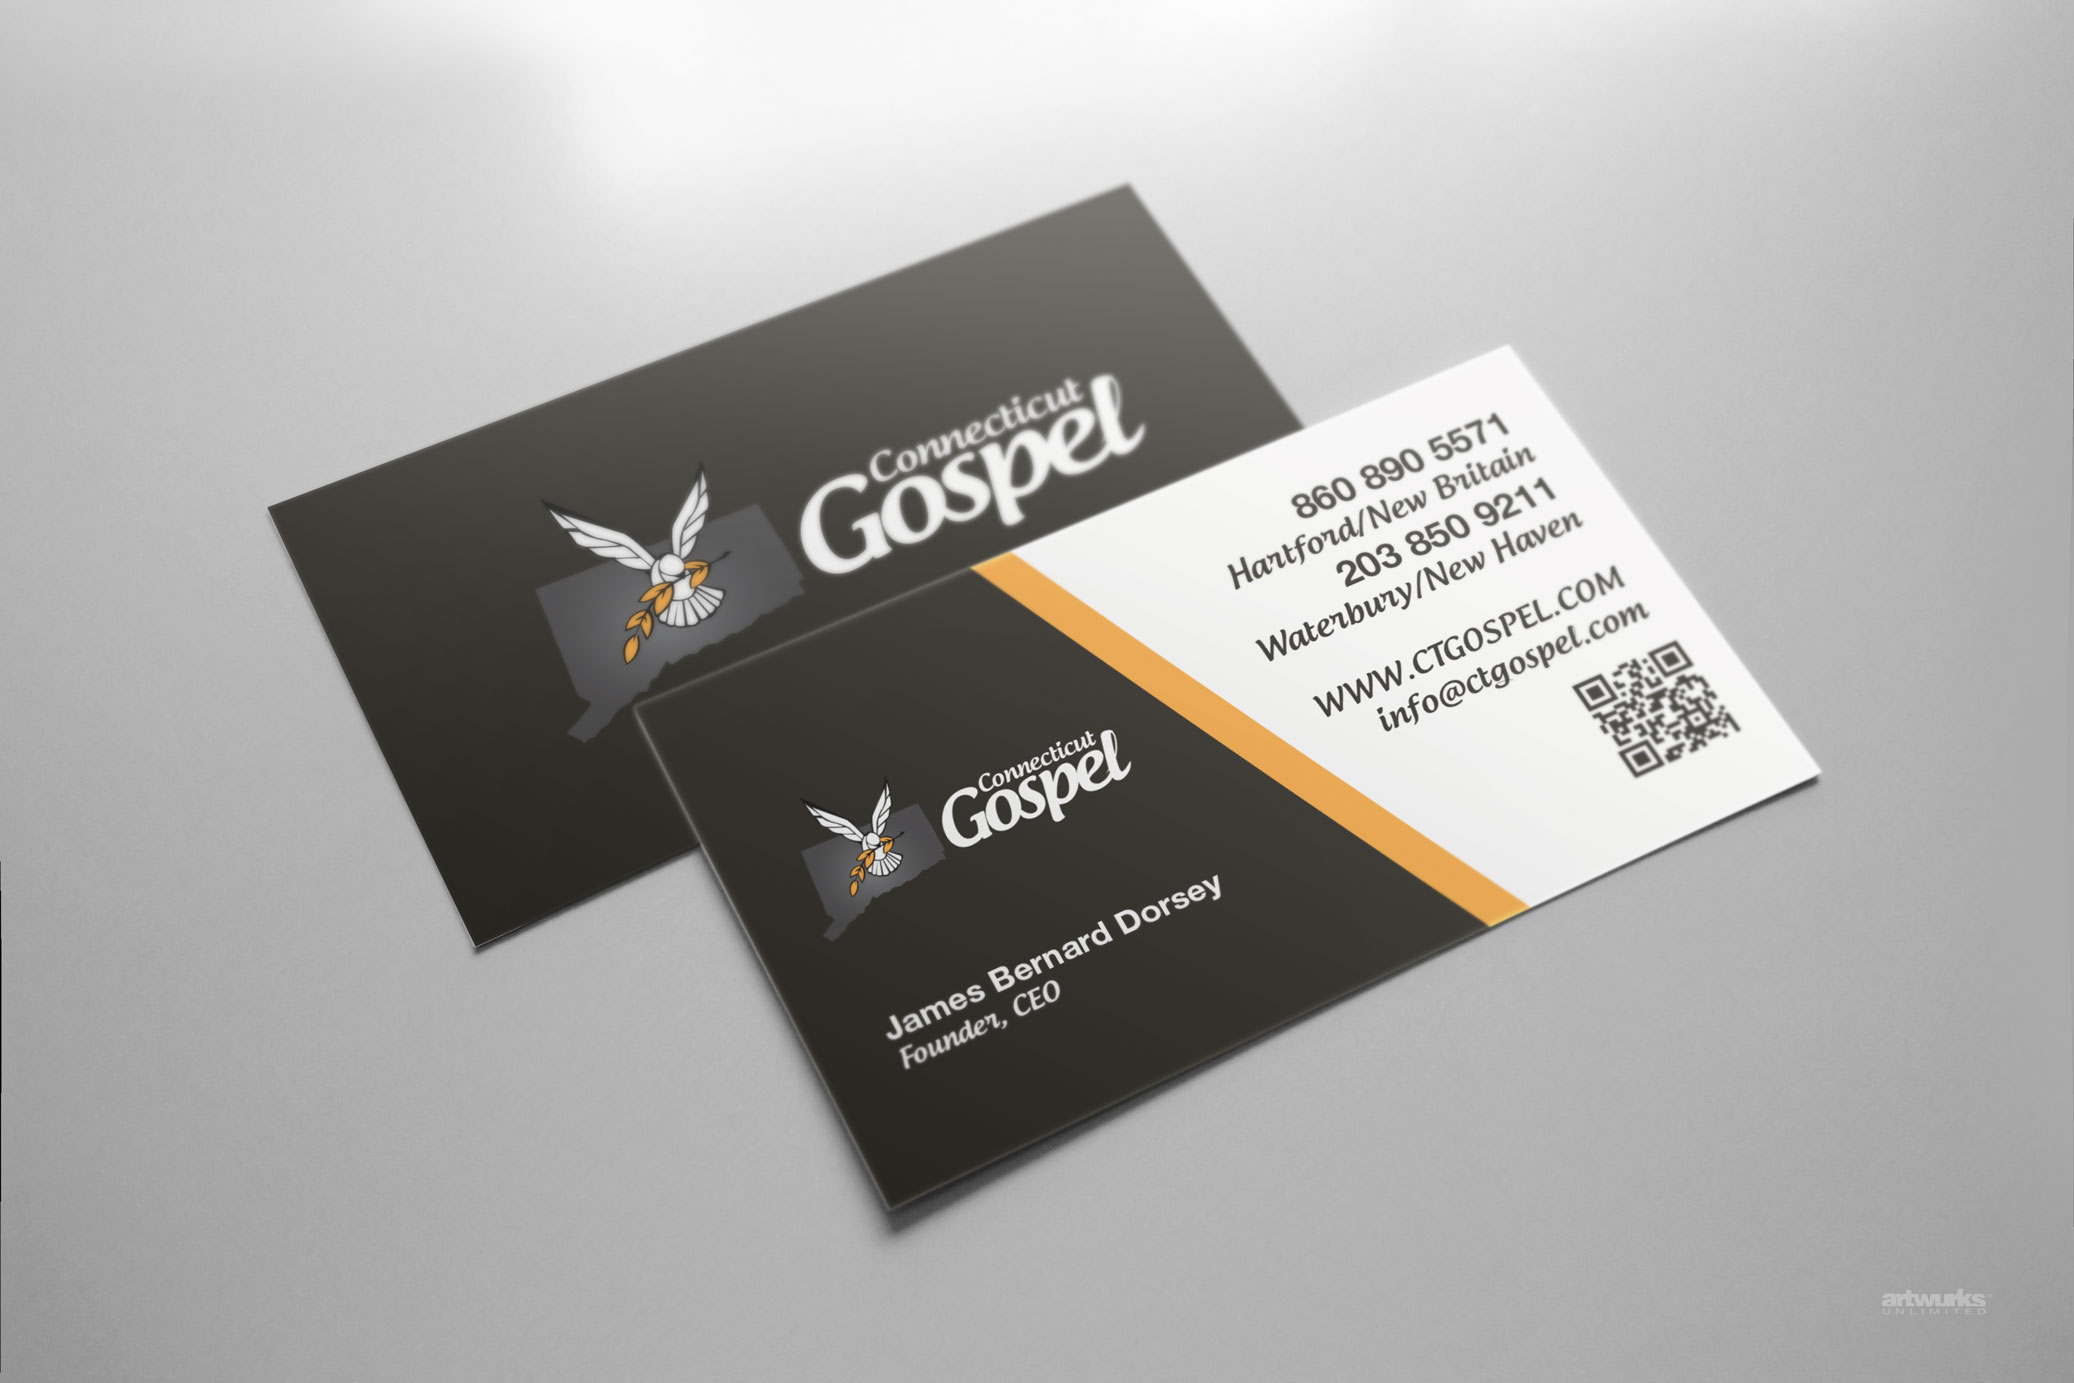 ctgospel-business-card.jpg